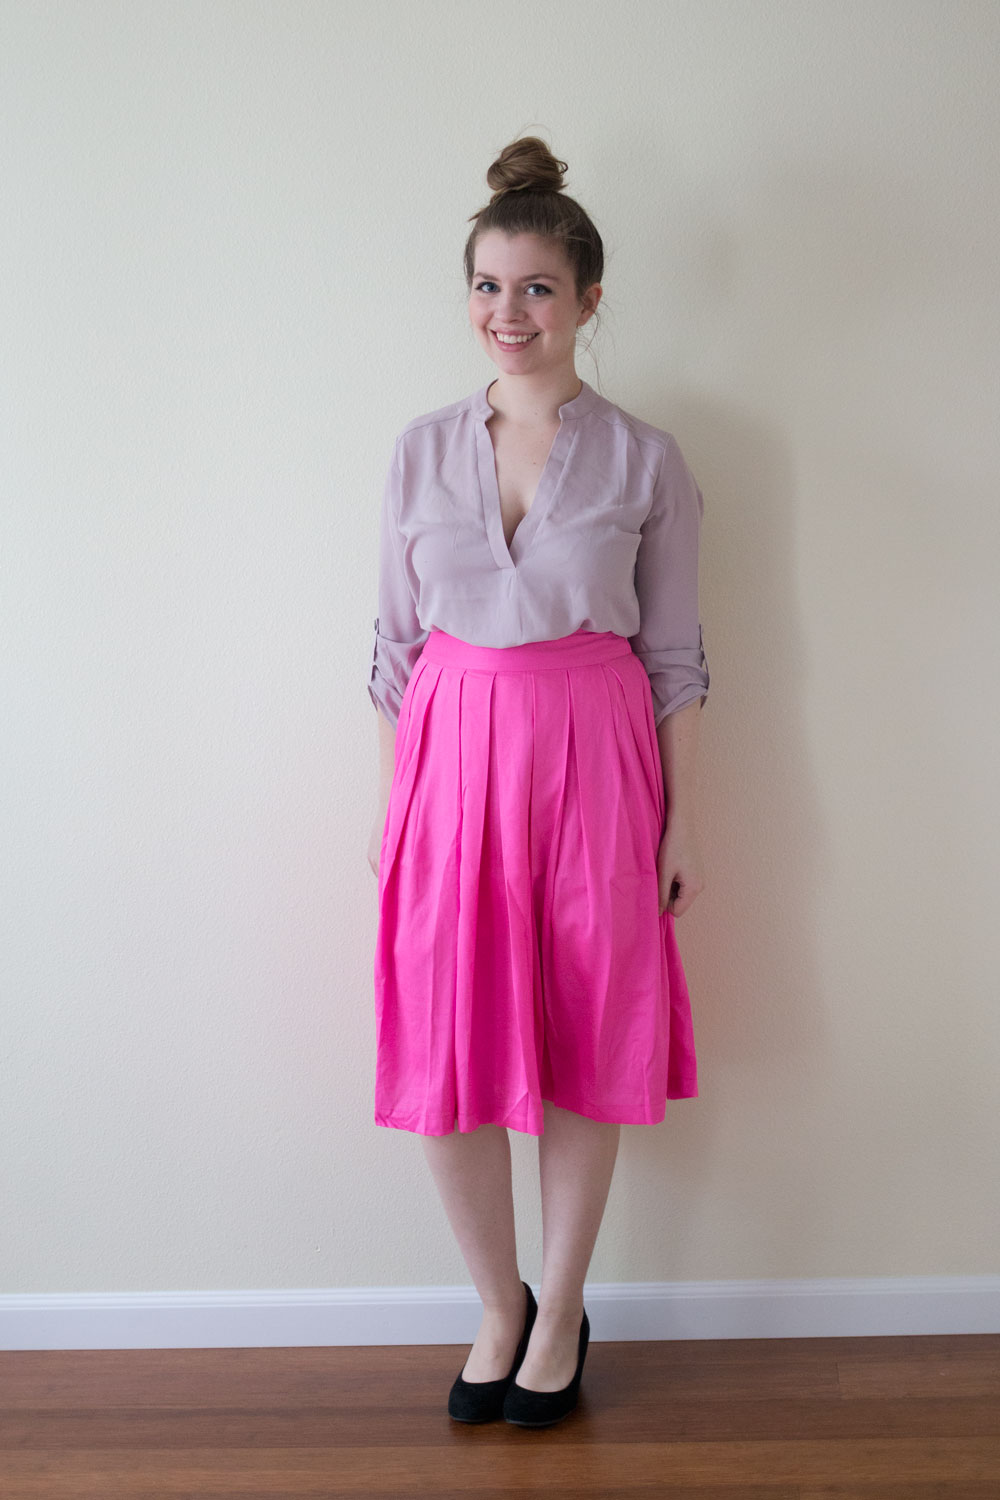 DailyLook A-Line Pleated Midi Skirt in Neon Pink / DailyLook Elite Box April 2015 Review and Styling / hellorigby seattle fashion blog